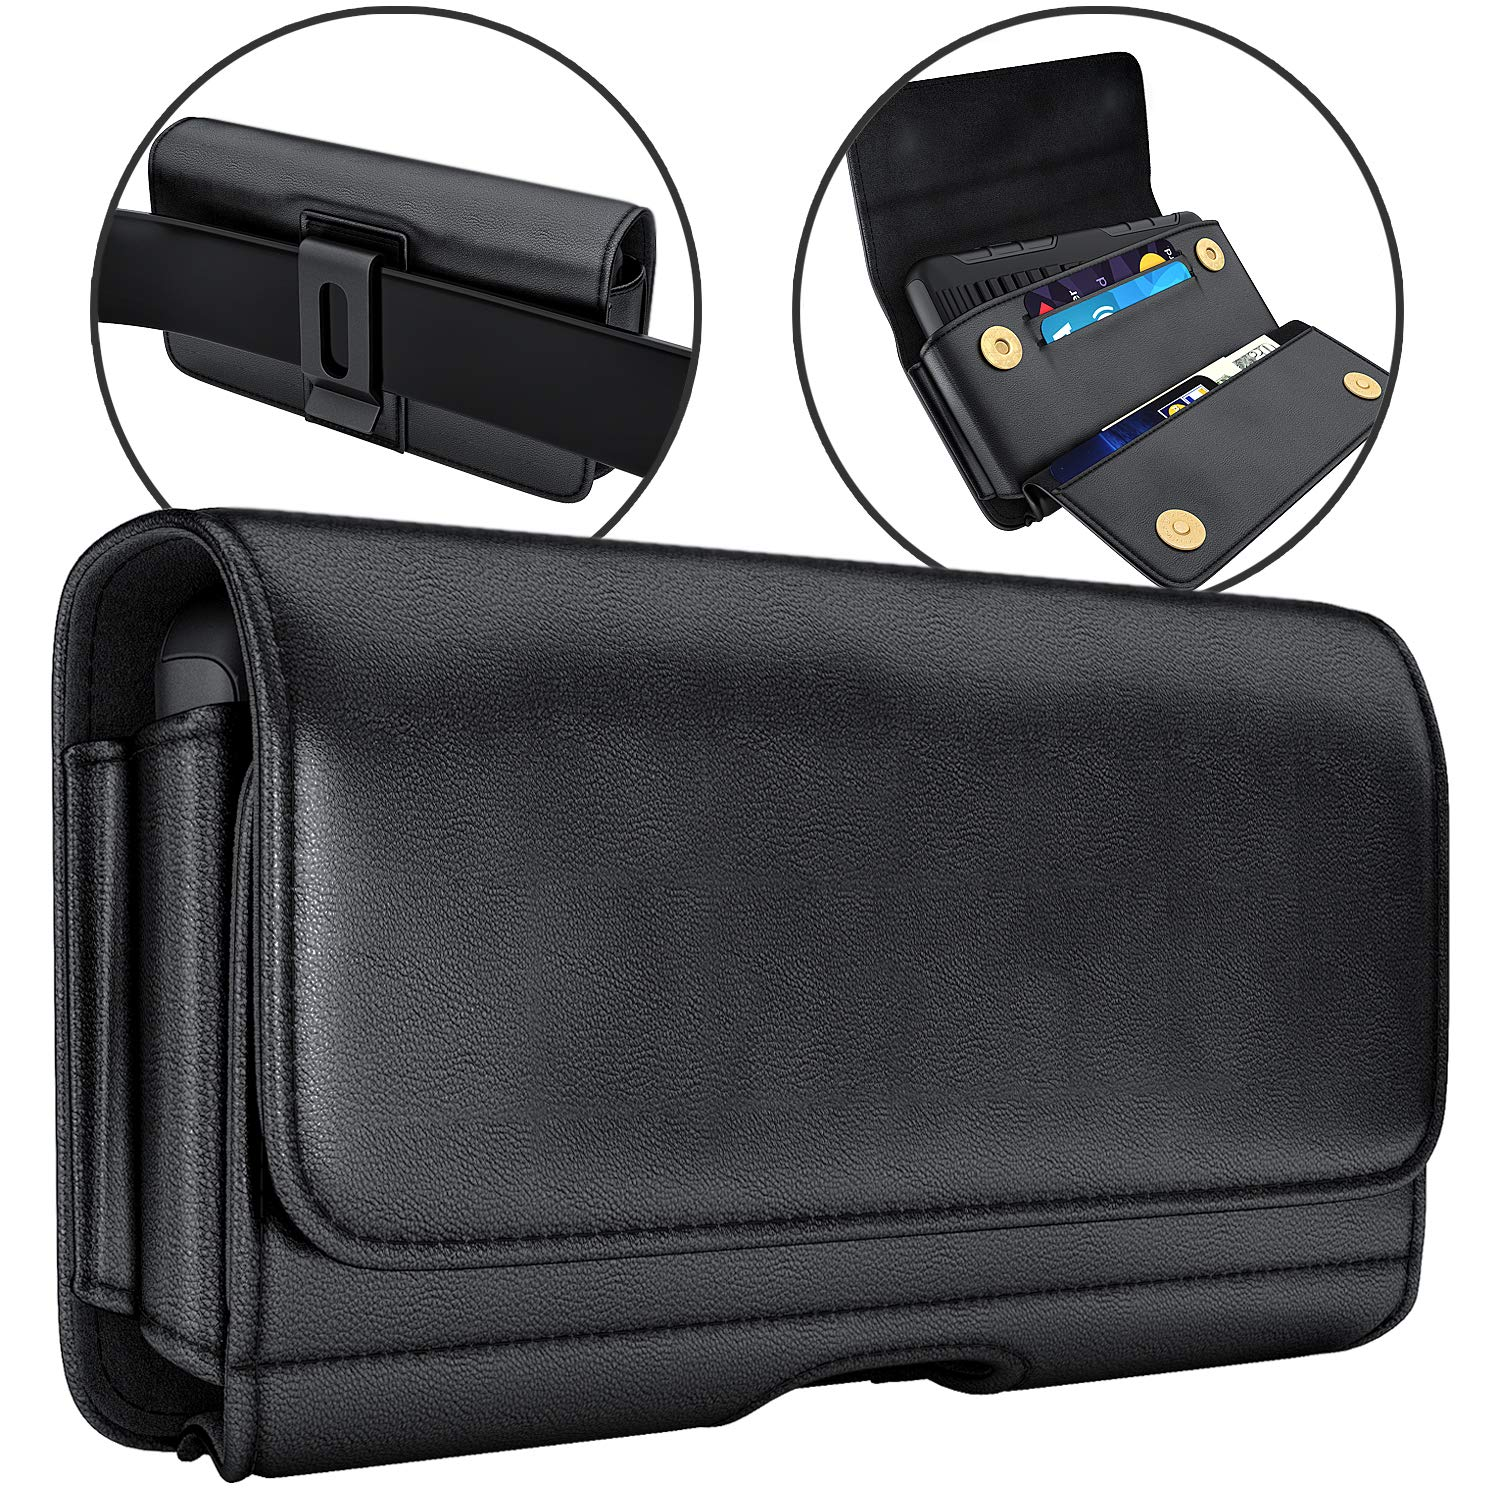 De-Bin iPhone 11 Holster, iPhone XR Holster, Leather Belt Case with Clip Cell Phone Pouch Belt Holder for iPhone 11 and iPhone XR (Fits Phone w/Other Case on)